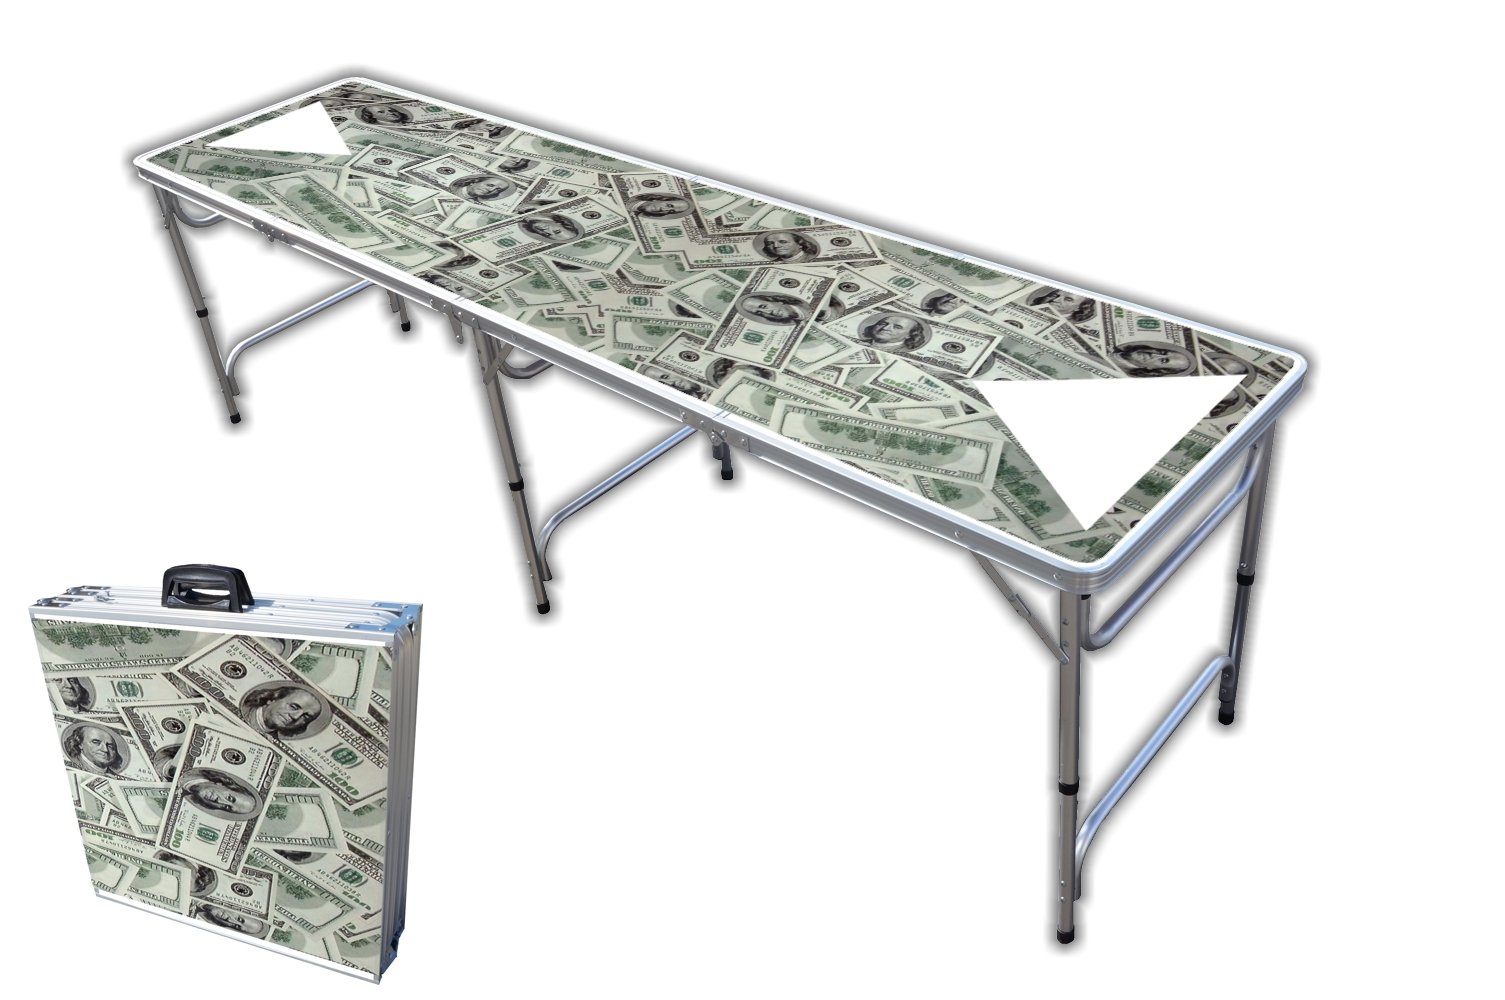 8-Foot Professional Beer Pong Table - So Friggin Money Graphic by PartyPongTables.com